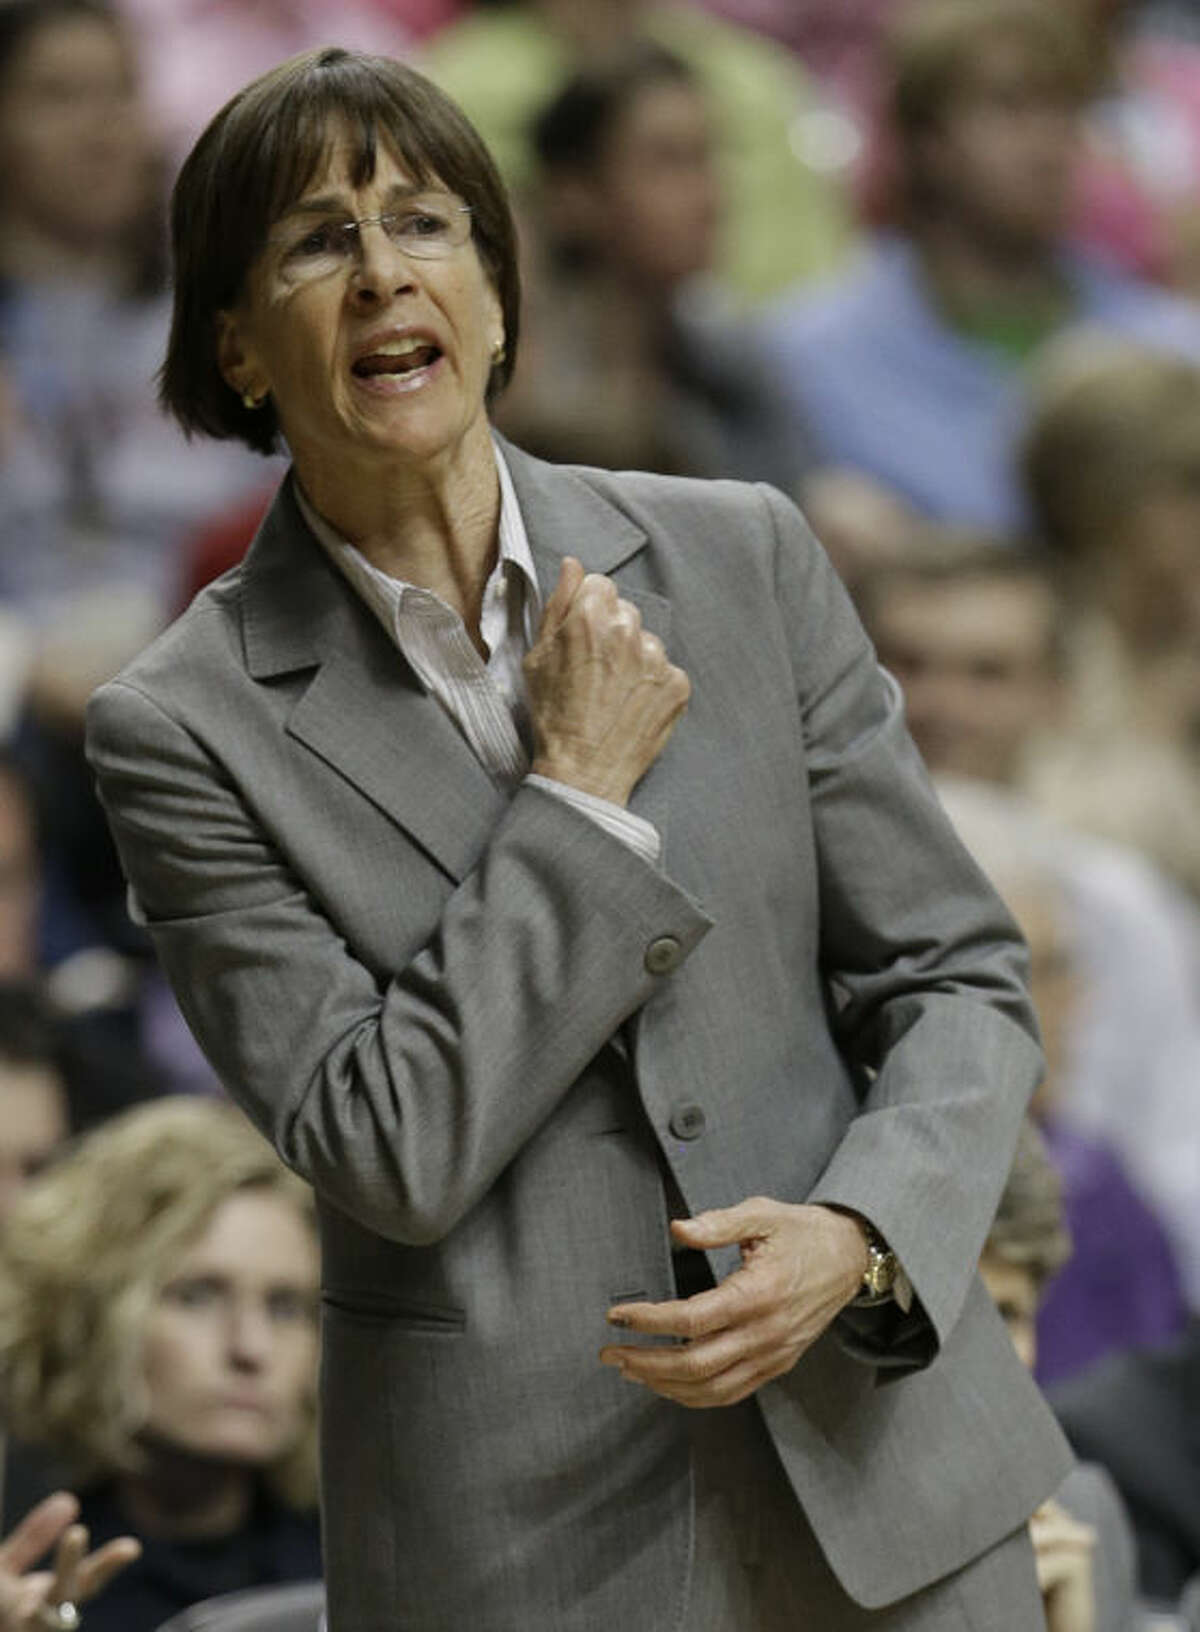 Stanford head coach Tara VanDerveer speaks to players against Connecticut during the first half of the semifinal game in the Final Four of the NCAA women's college basketball tournament, Sunday, April 6, 2014, in Nashville, Tenn. (AP Photo/Mark Humphrey)